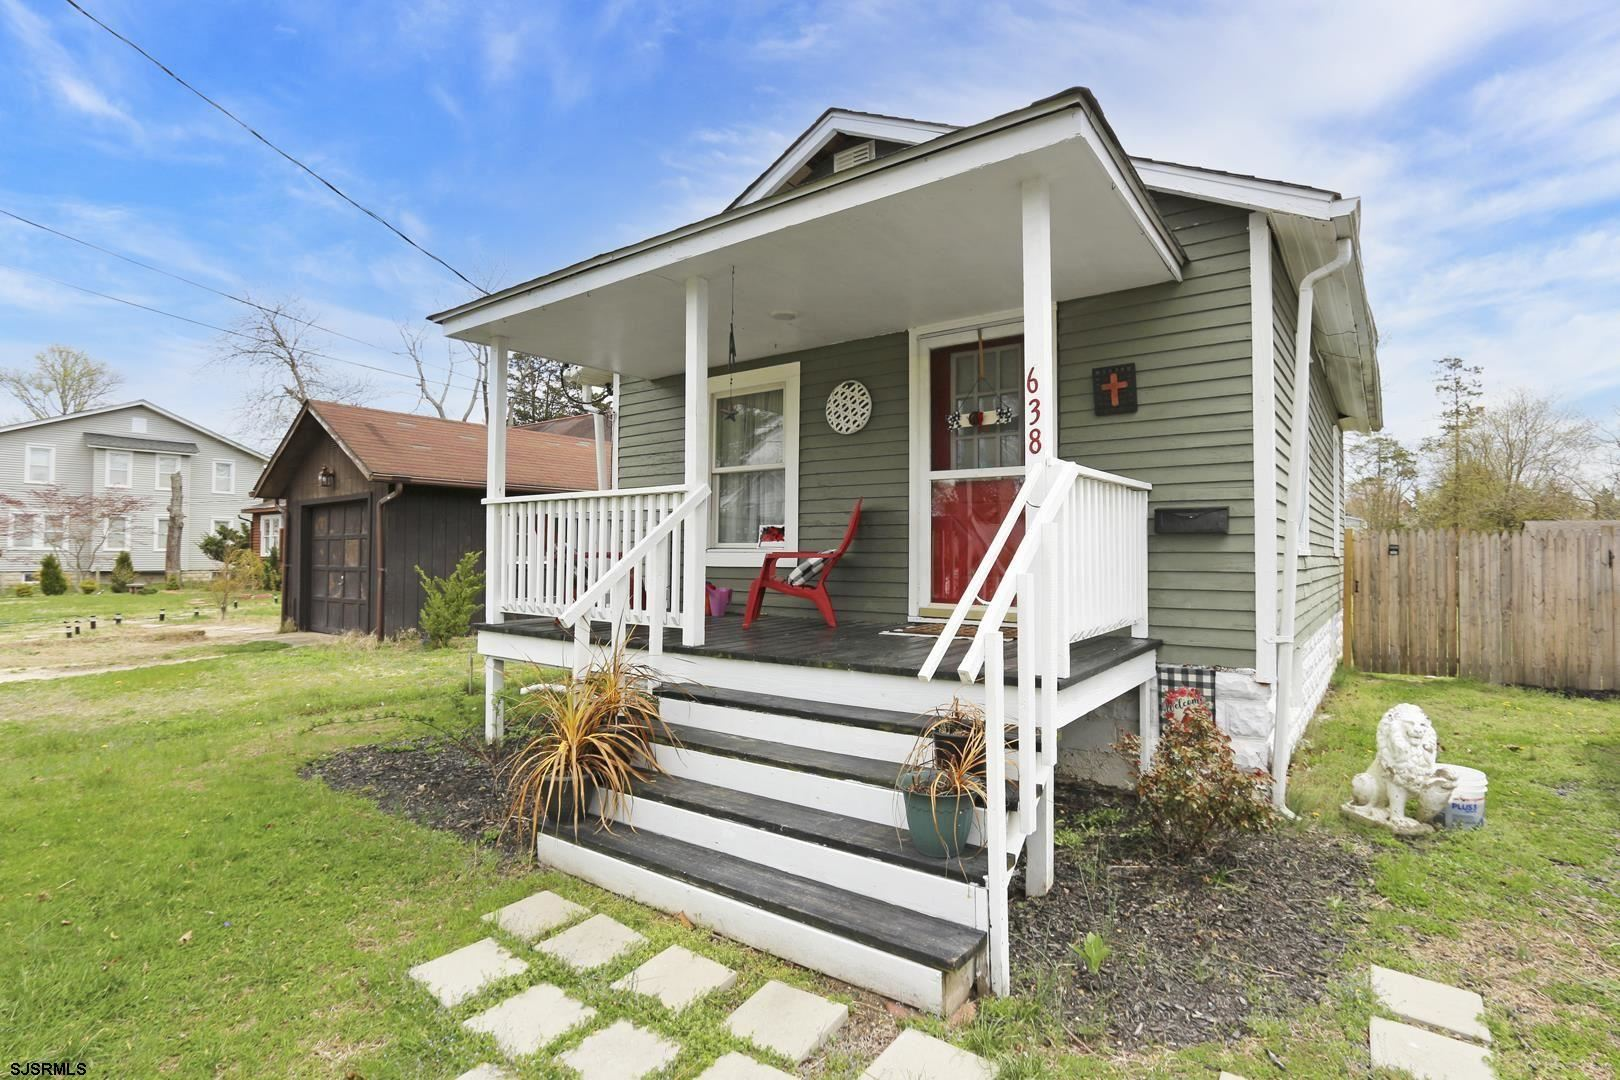 638 S 8th Street, Absecon, NJ 08201 - #: 553742